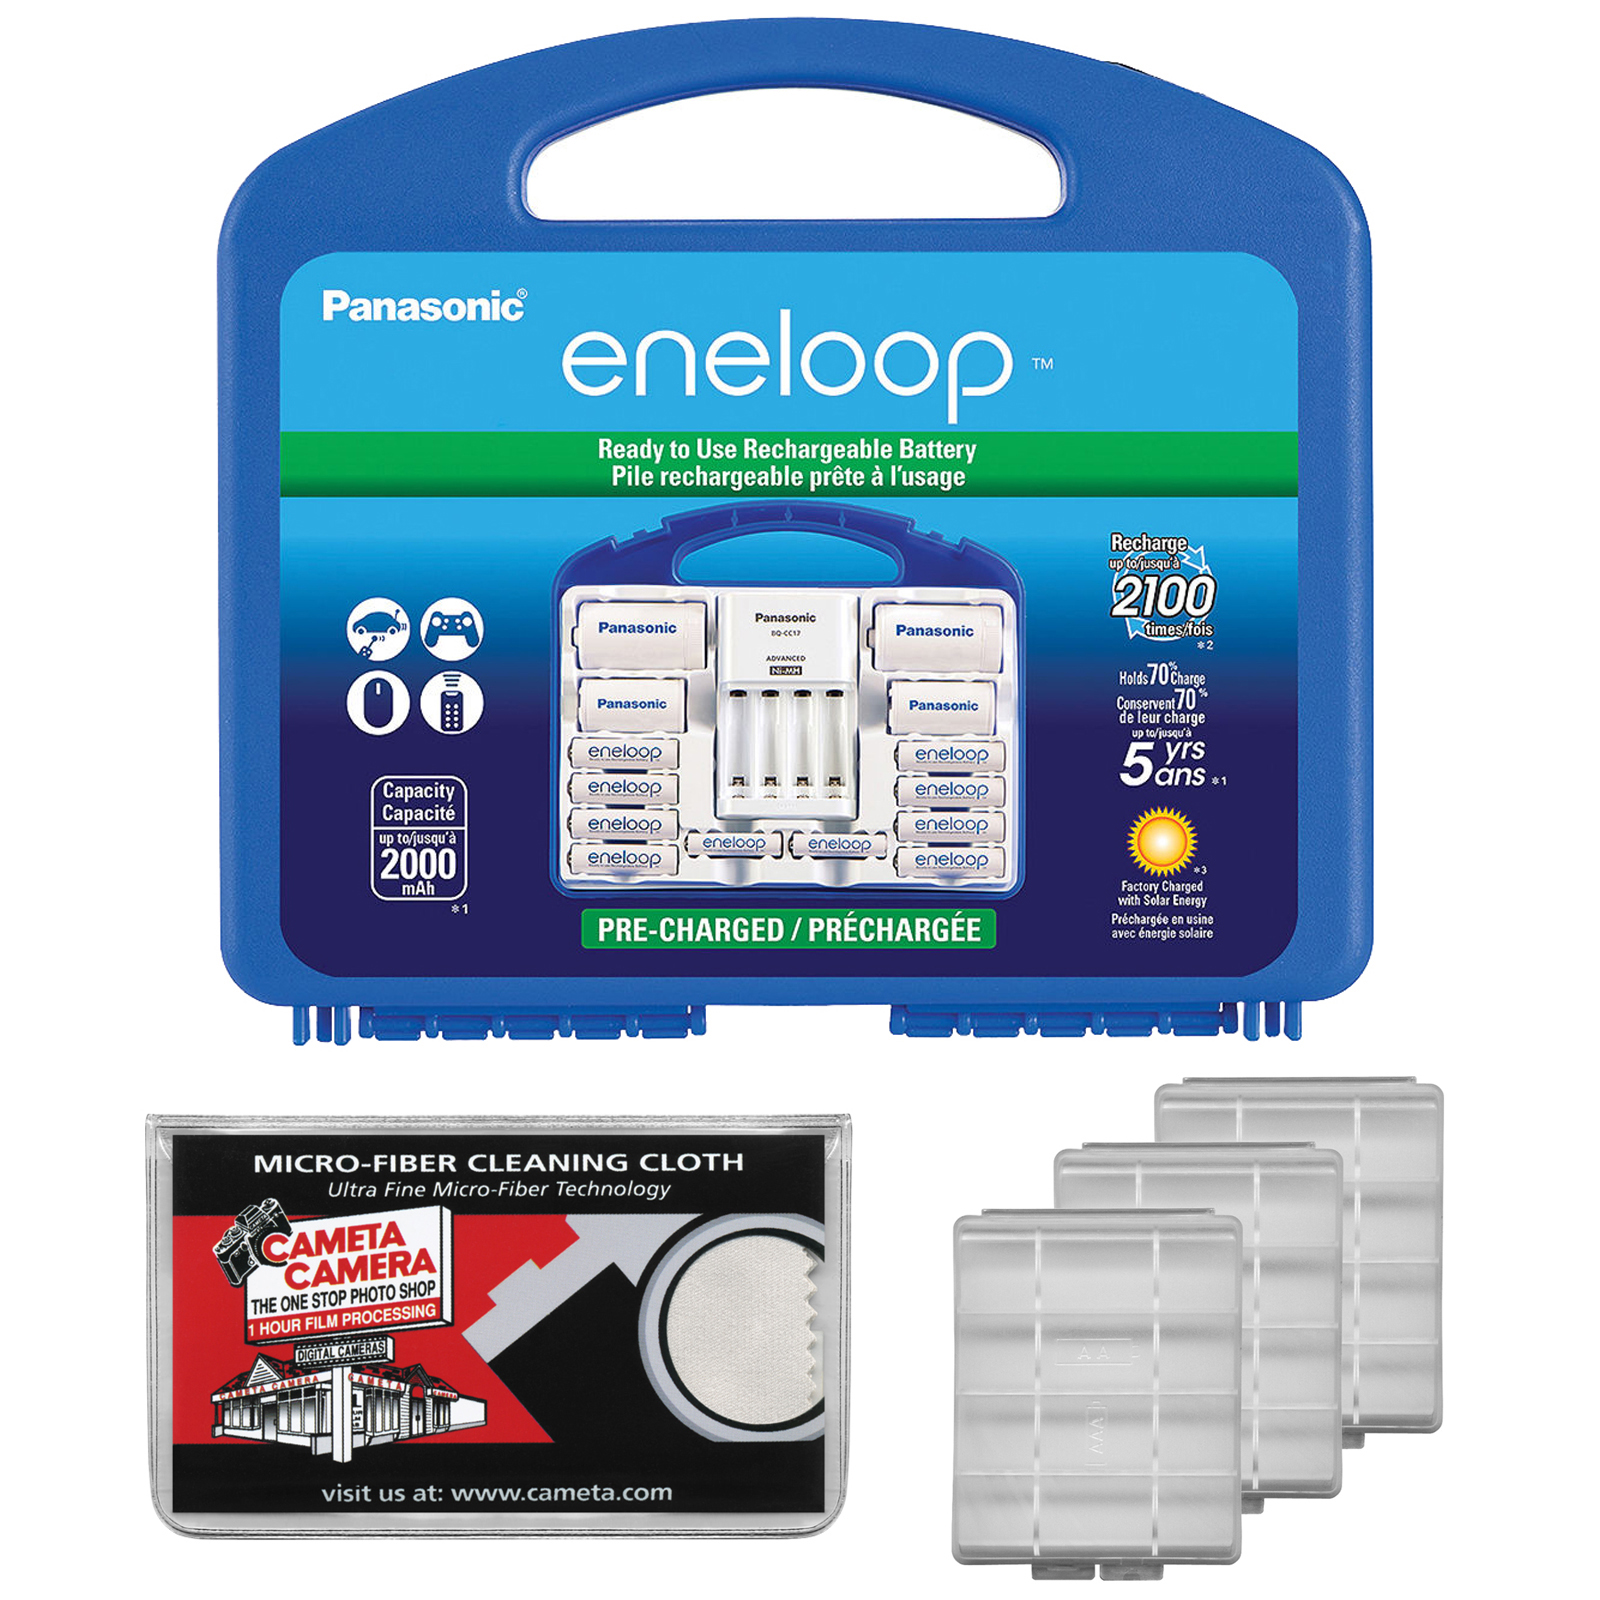 Panasonic Eneloop Power Pack Set With 8 AA 2 AAA Rechargeable